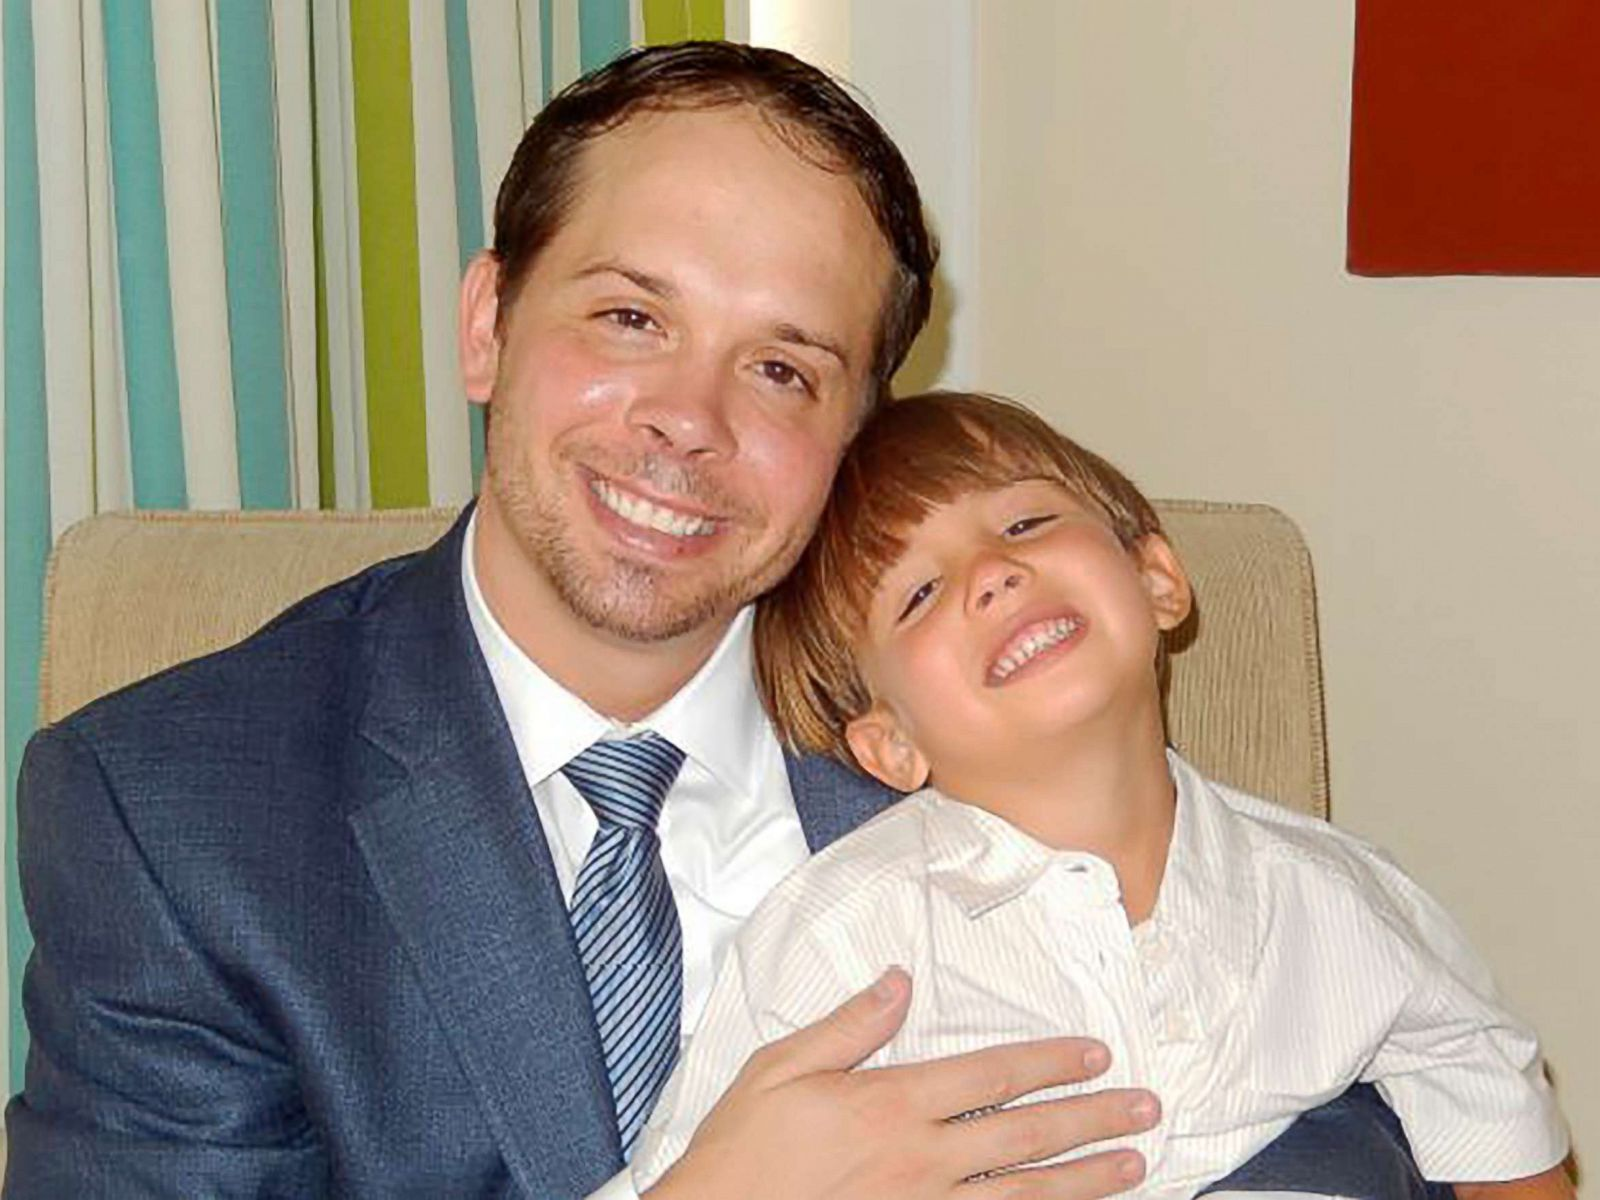 Texas dad hopeful of son's return from Brazil after former